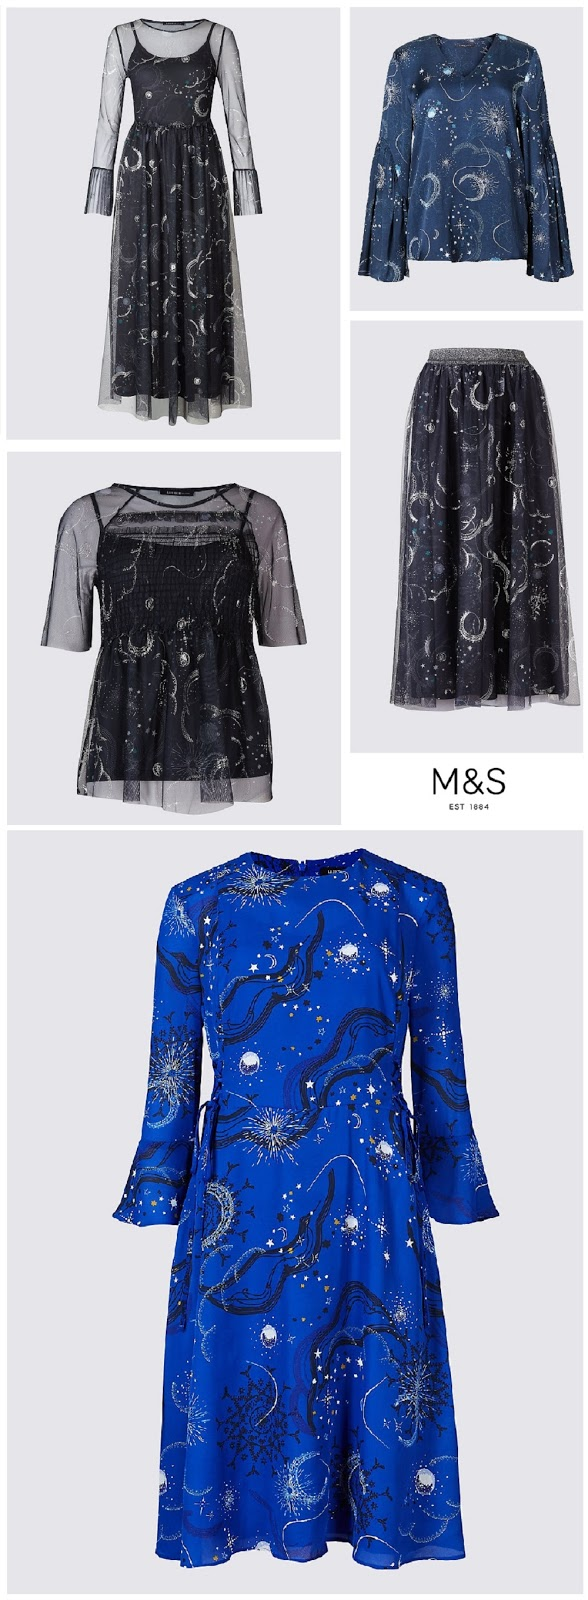 Constellation Print, Marks and Spencer, Celestial Print, M&S, The Style Guide Blog, Northern Ireland